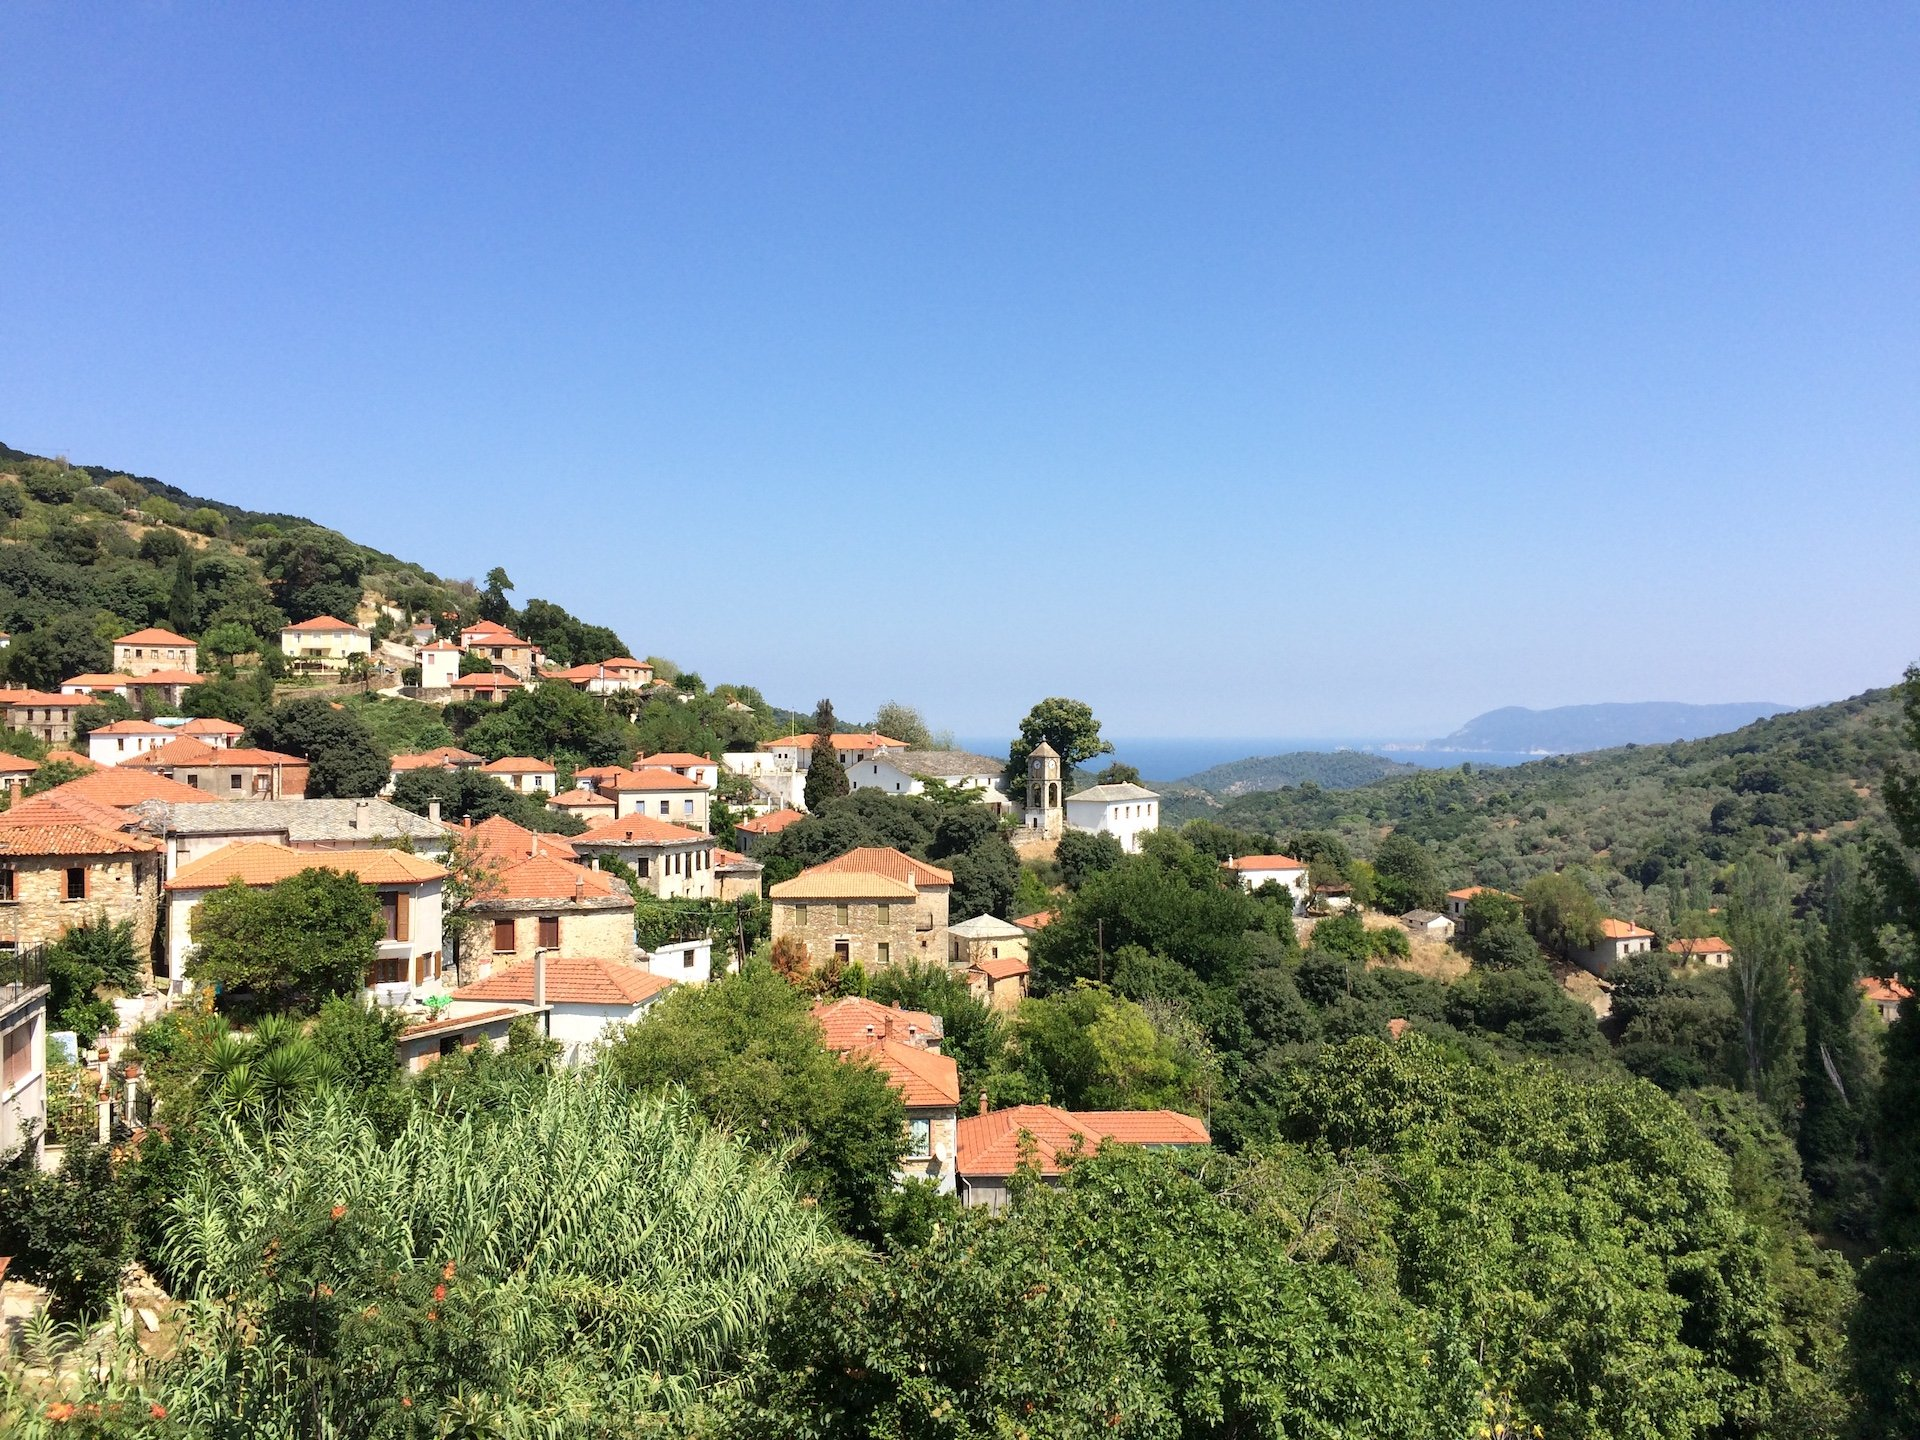 One of the picturesque villages with sea views built in Mount Pelion.